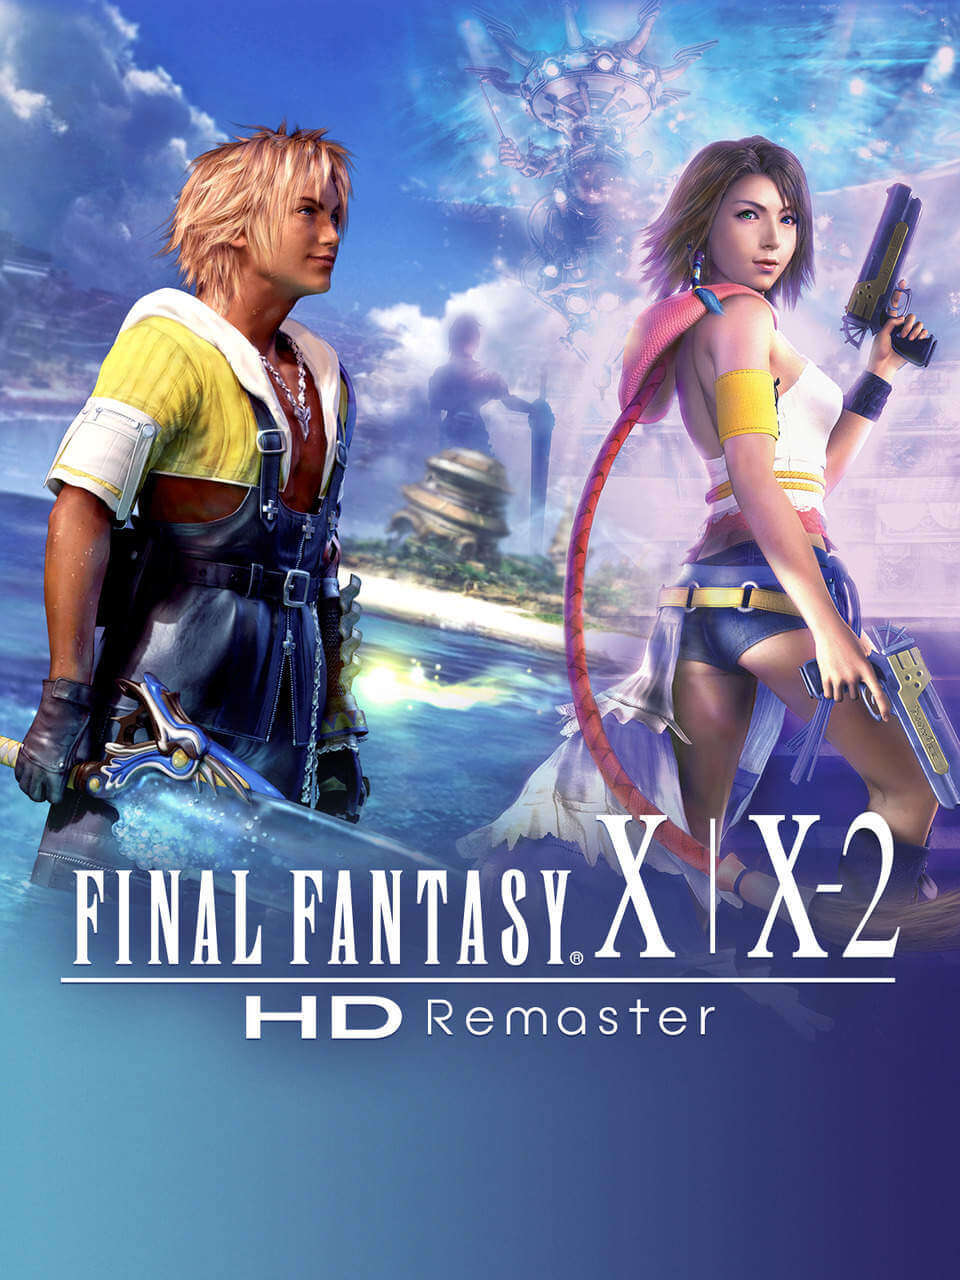 final fantasy x x 2 hd remaster game pc download